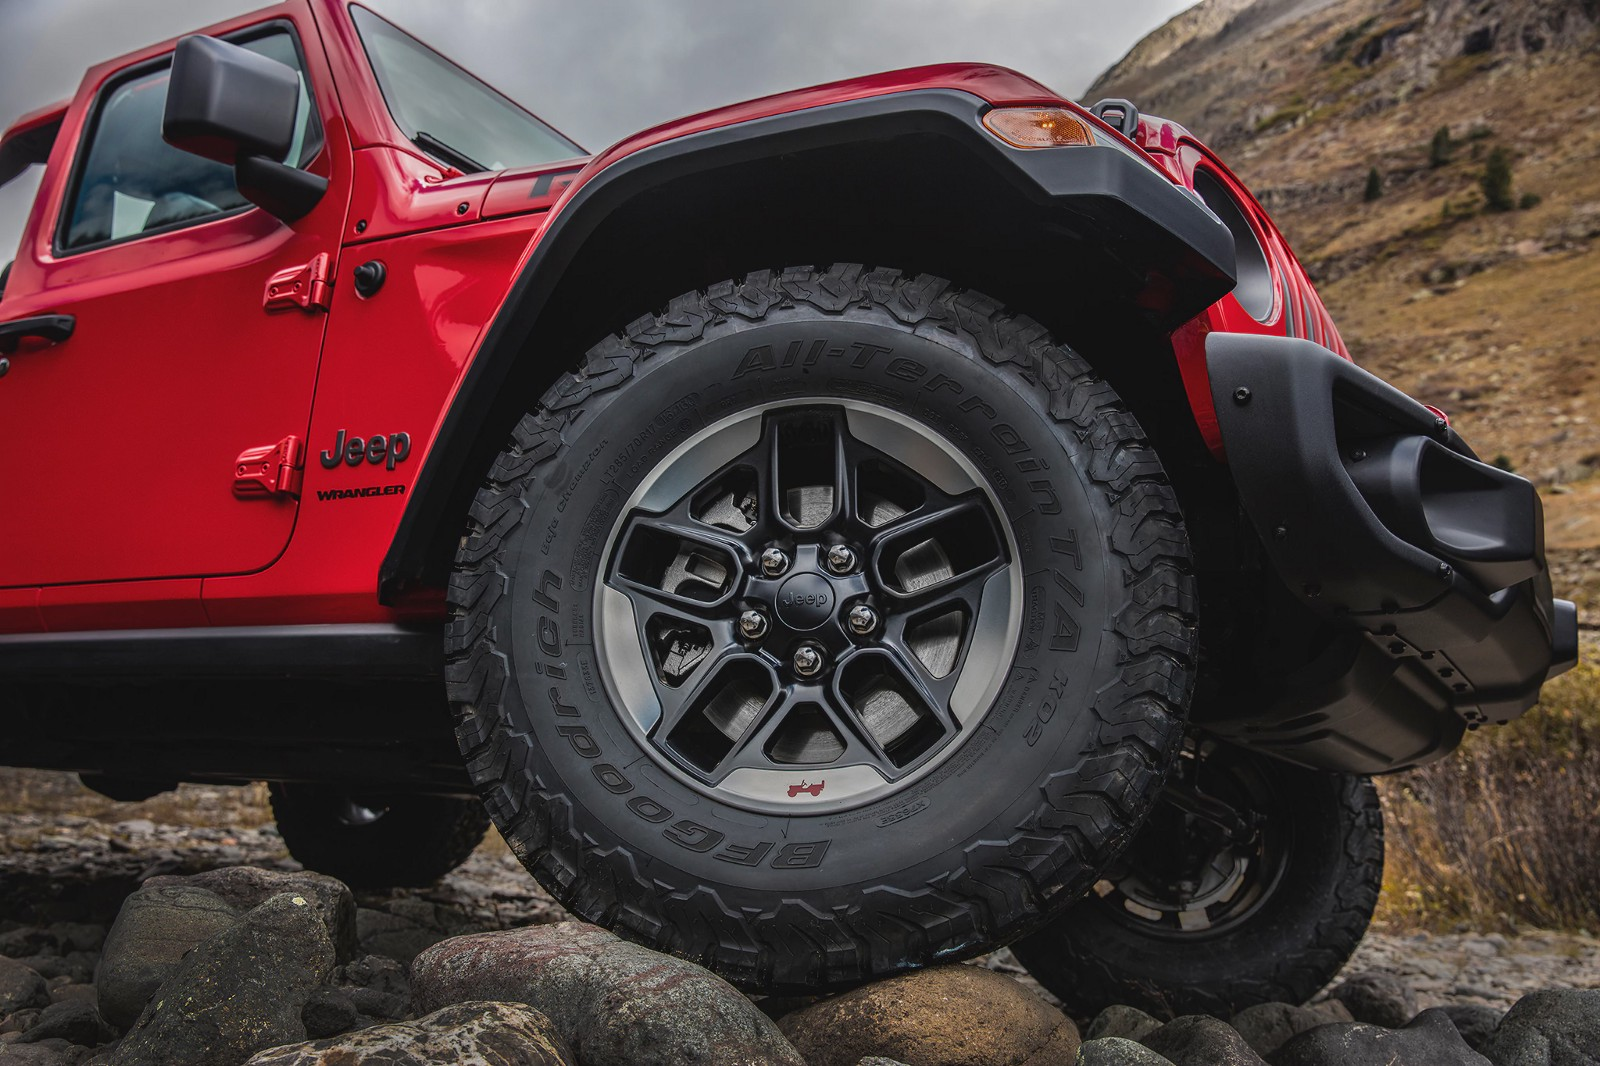 The 2018 Jeep Wrangler The Anatomy Of The Original Jeep